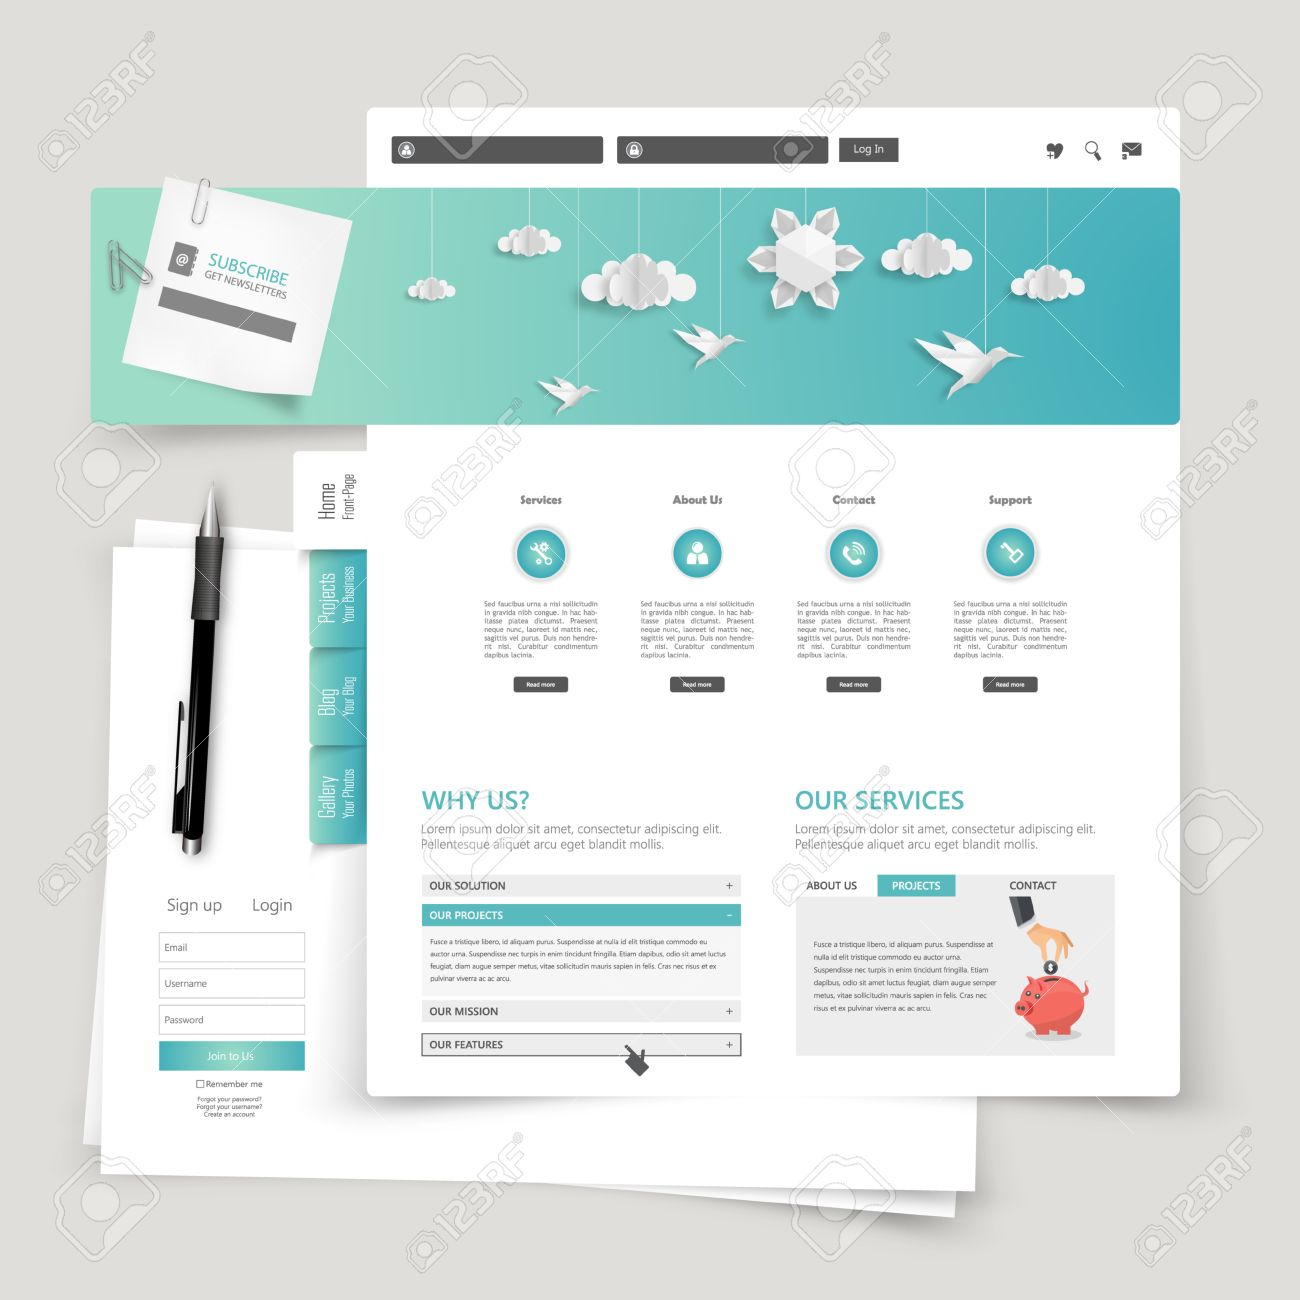 modern creative website design template royalty free cliparts